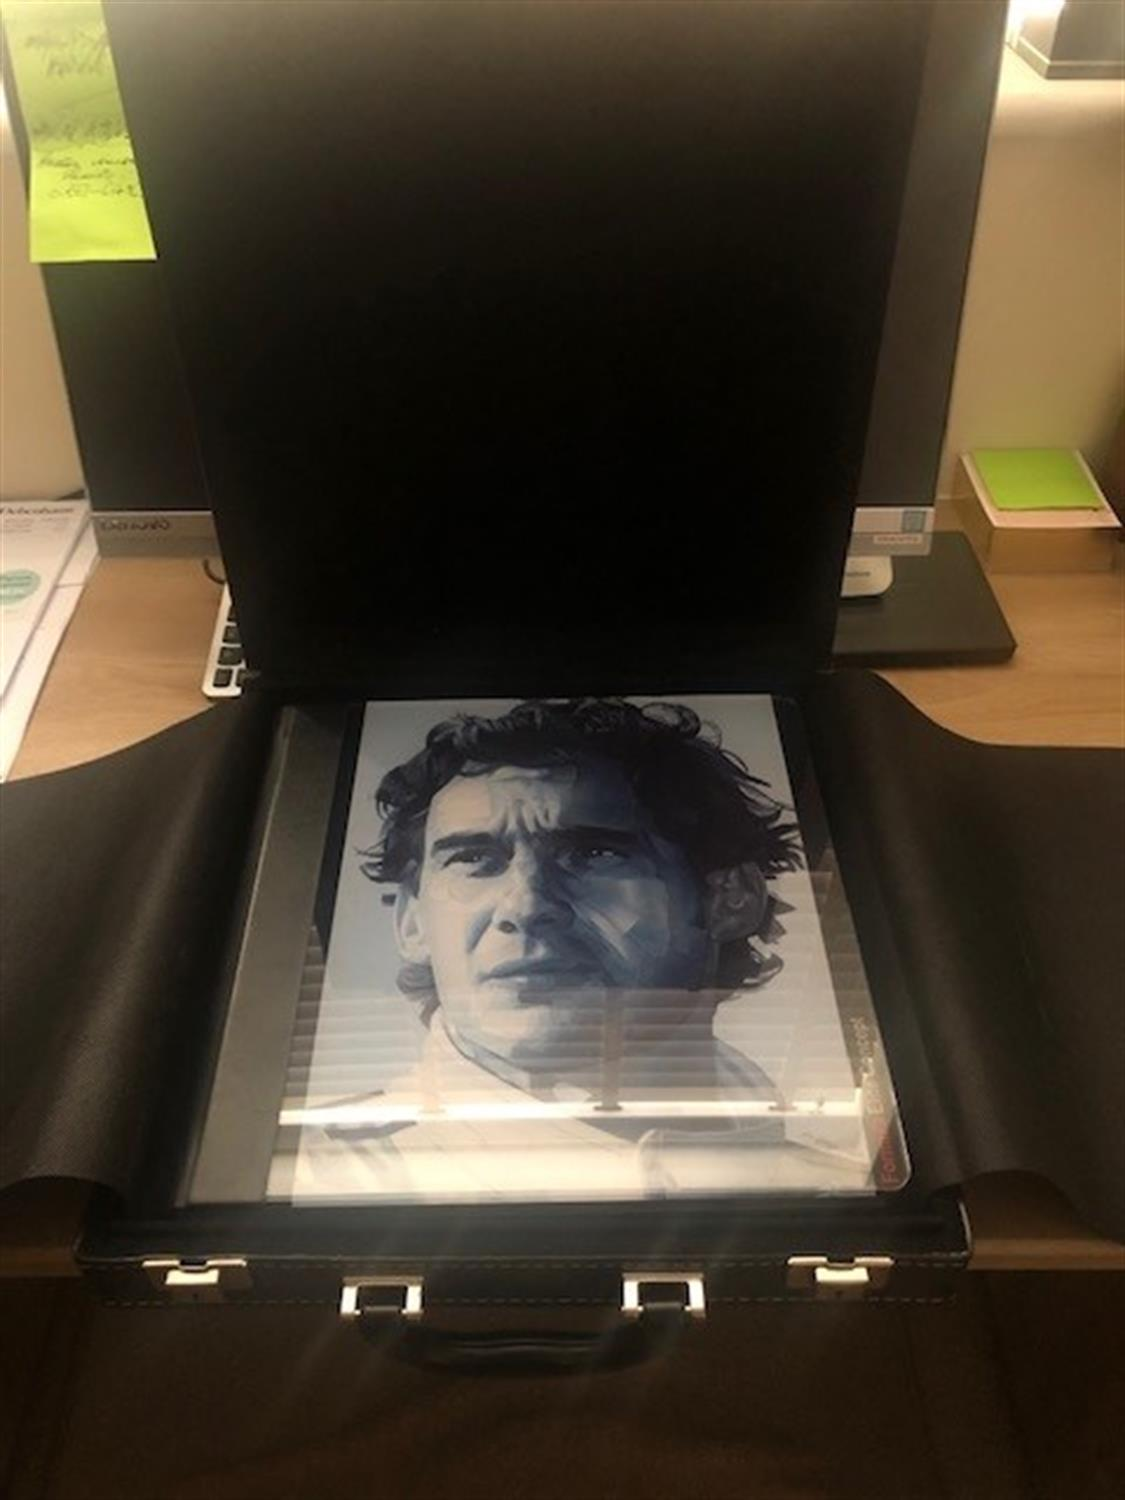 Coffee Table Publication Featuring Ayrton Senna - Image 4 of 6